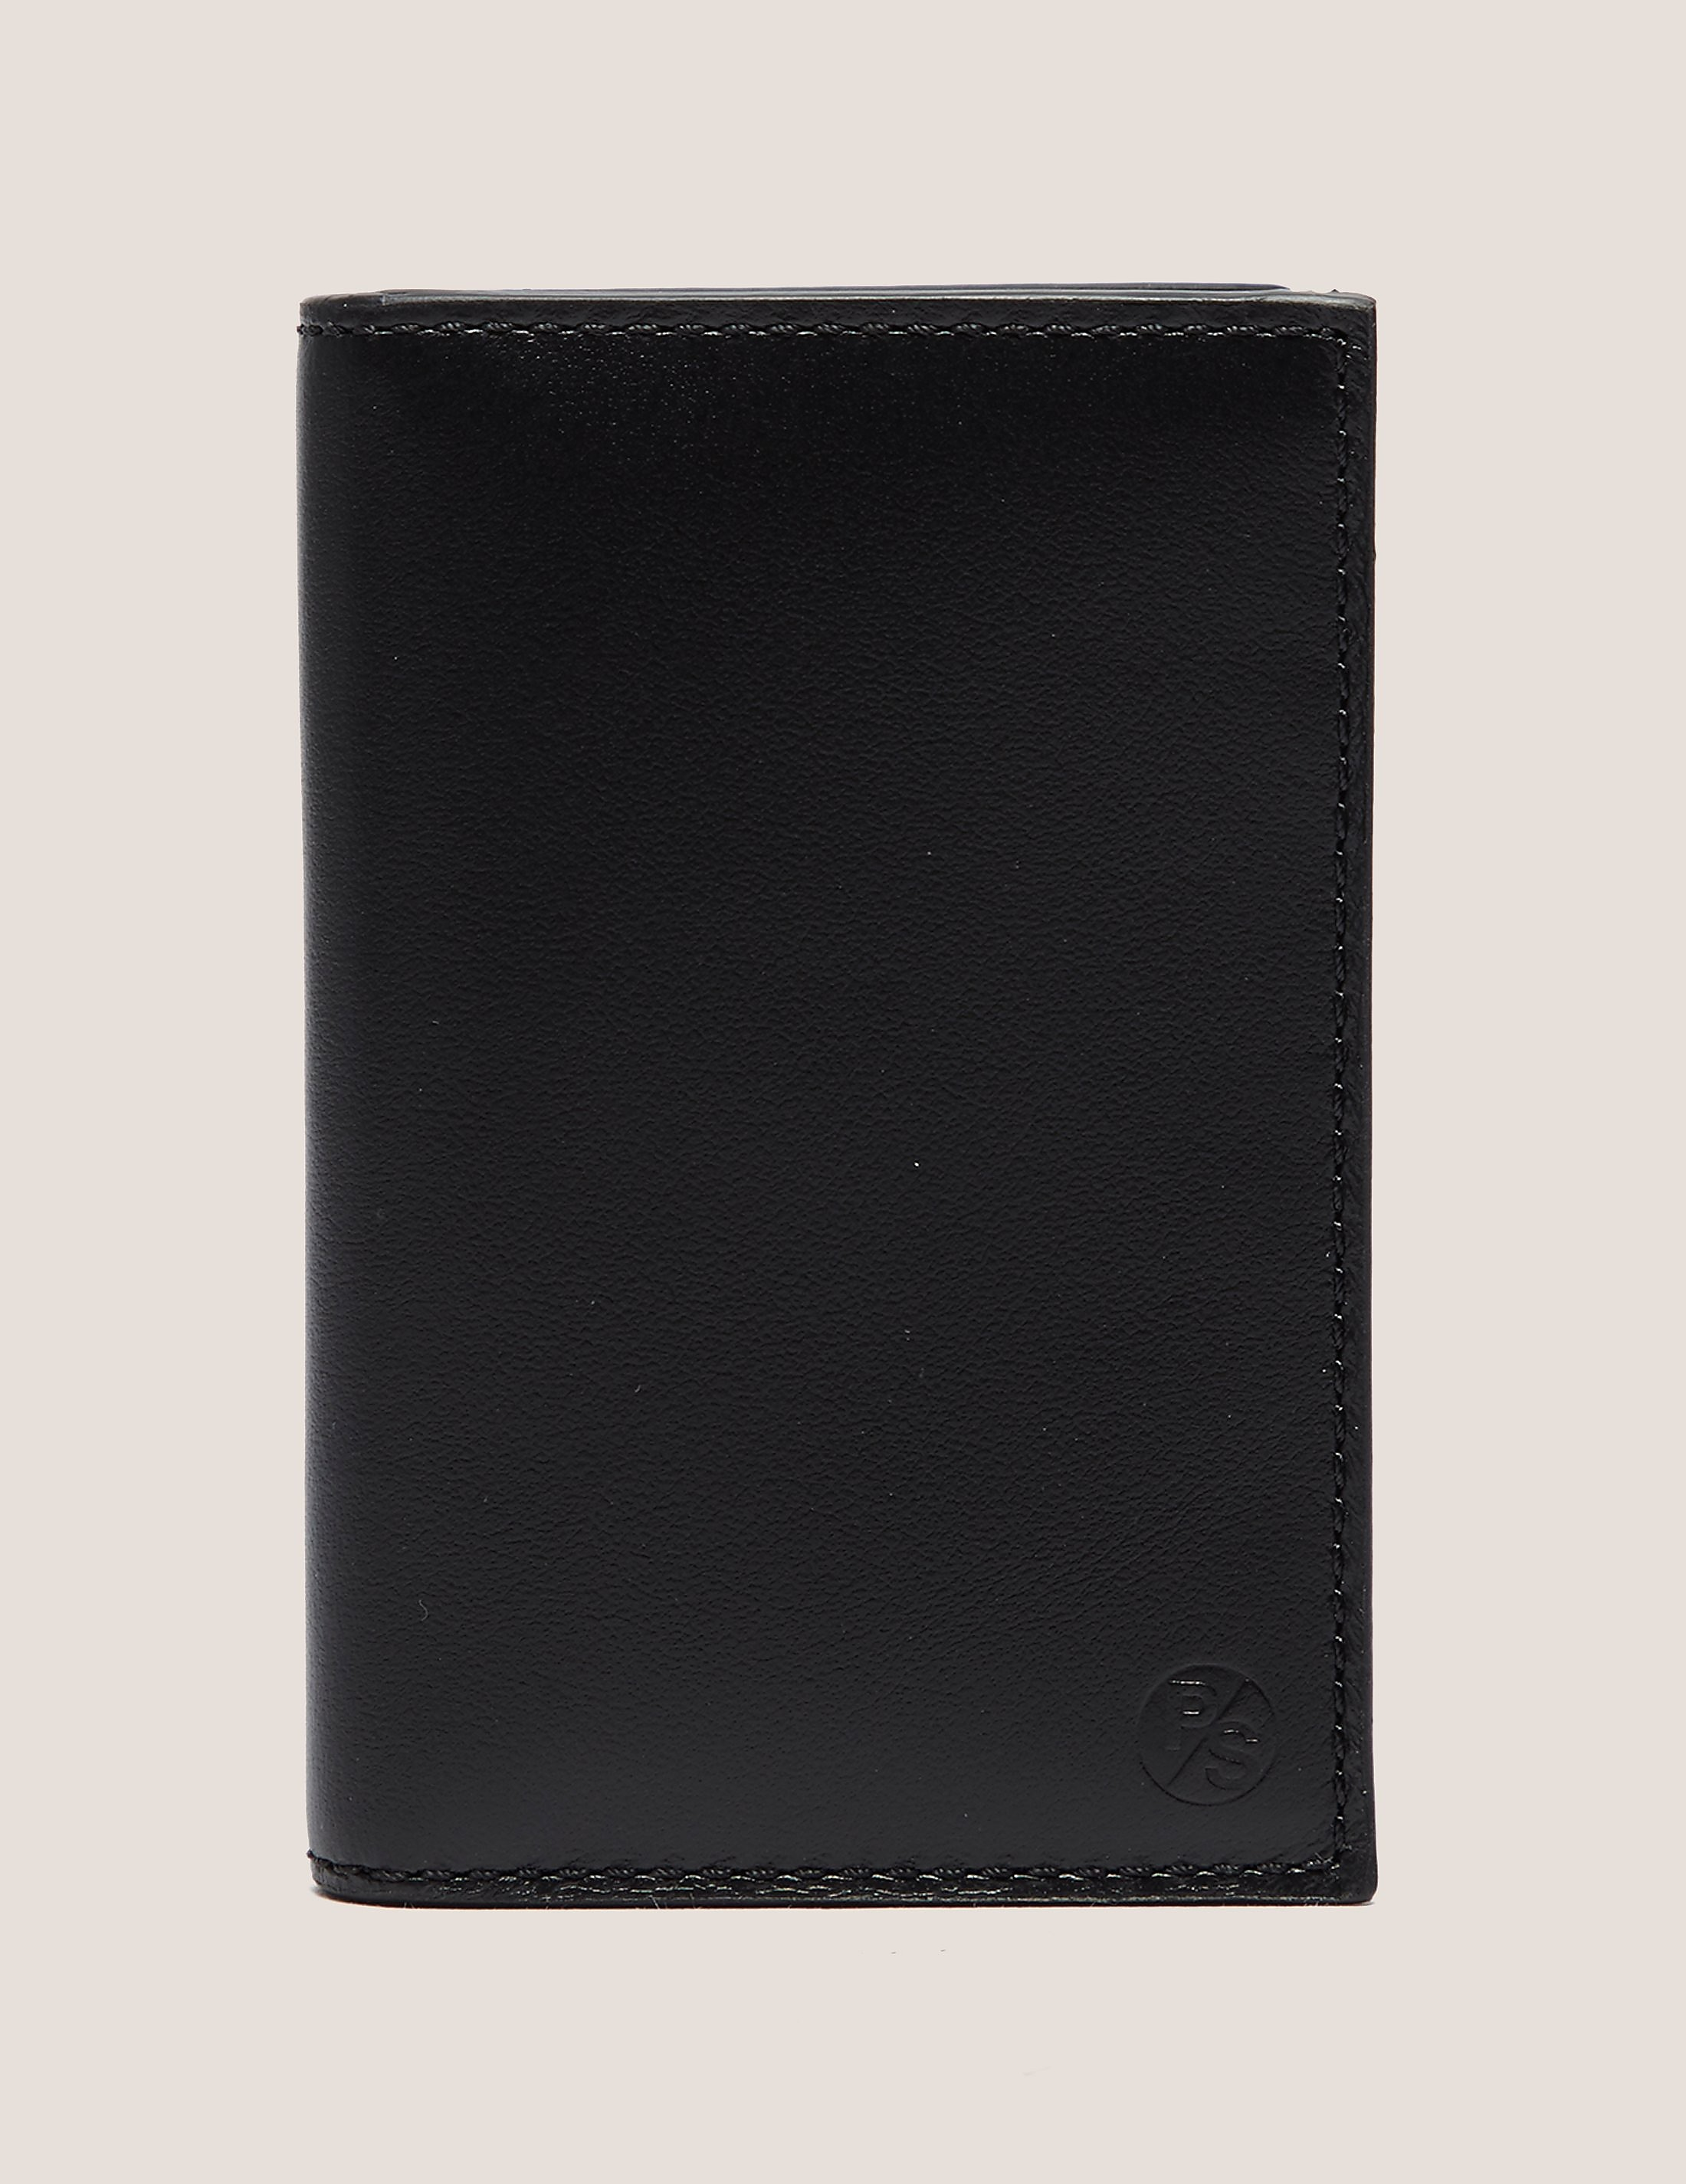 Paul Smith Contrast Piping Credit Card Wallet